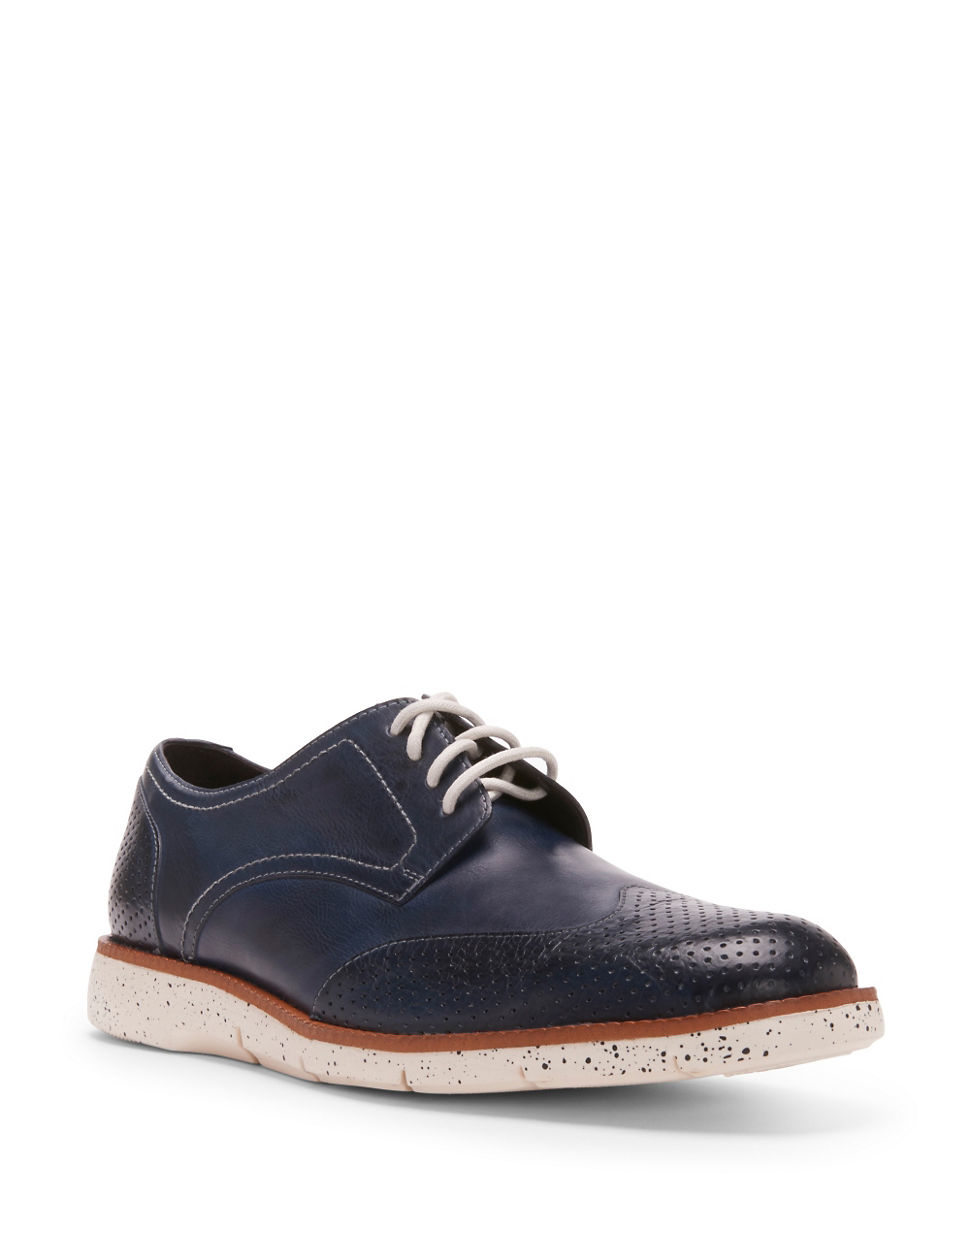 Size  Navy Blue Wingtip Shoes